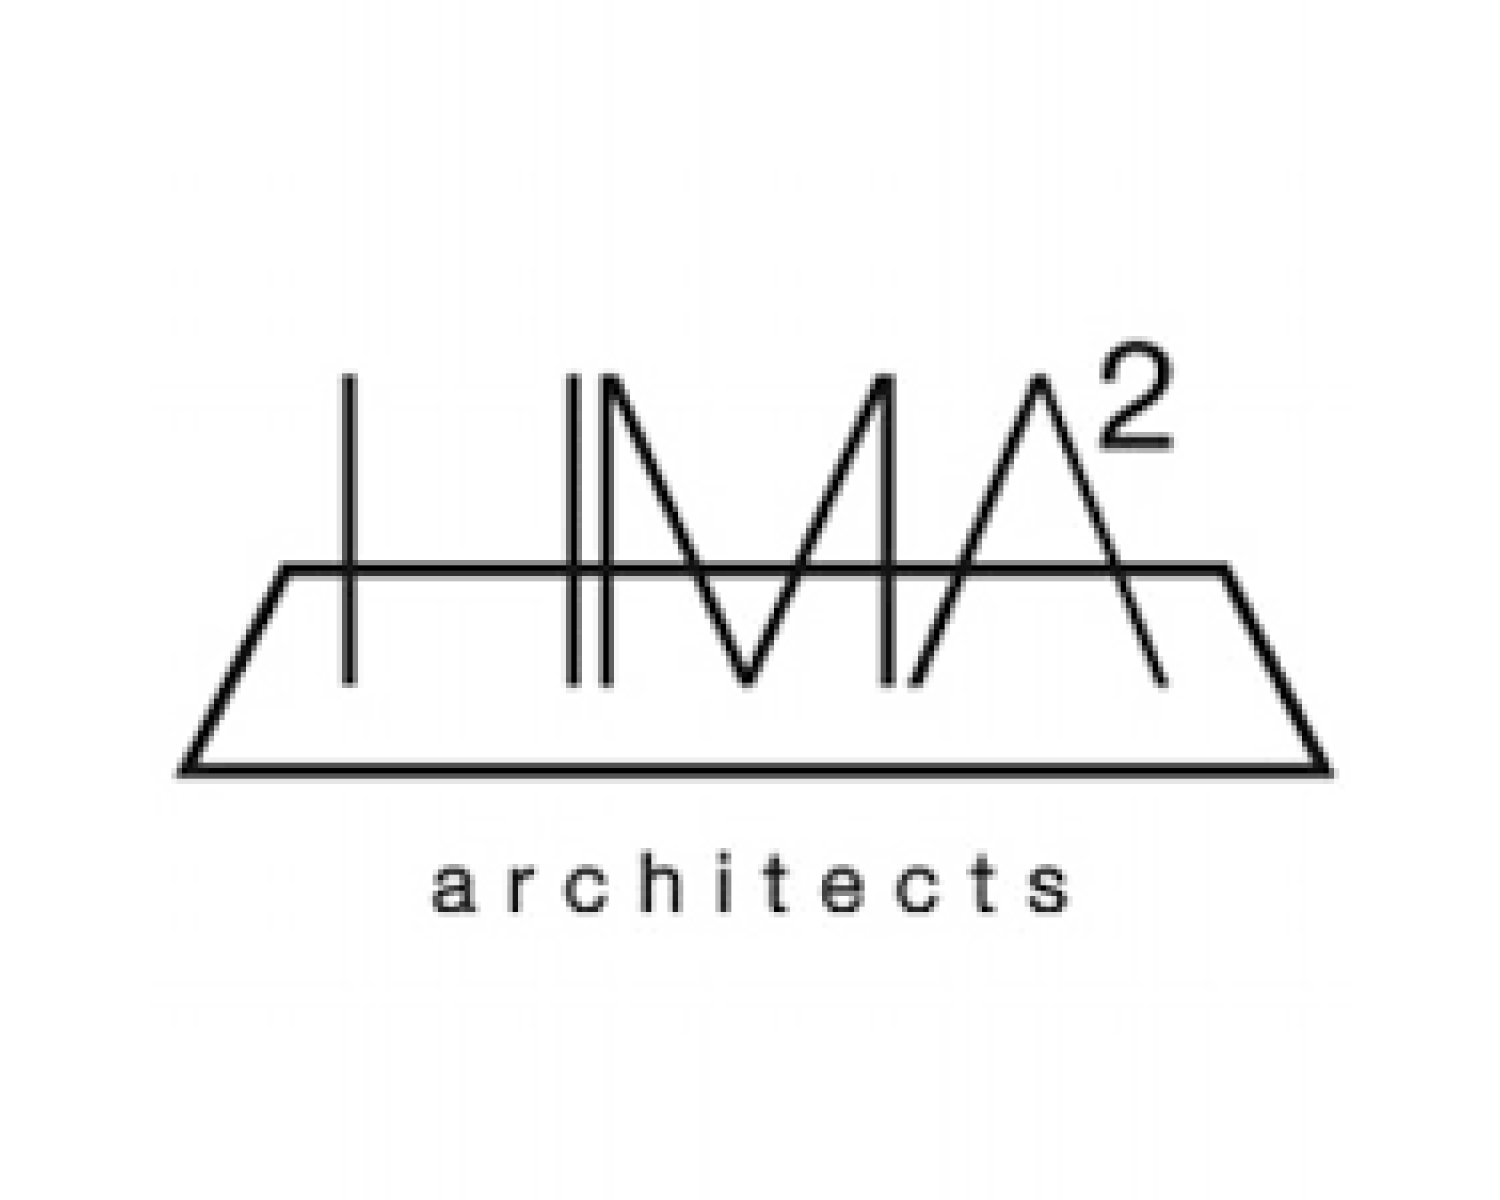 HMA2 Architects